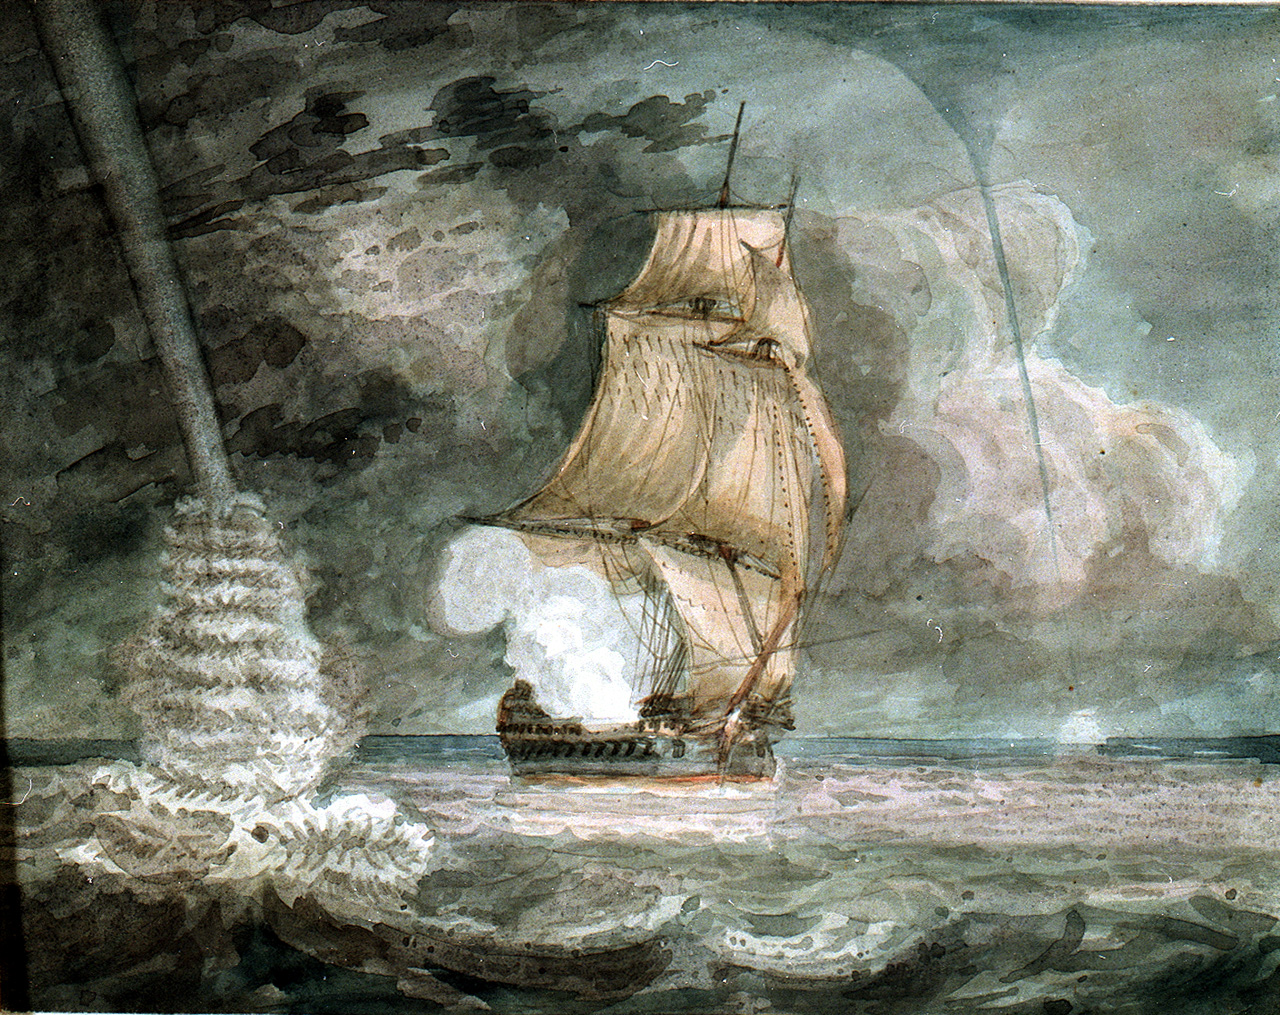 Naval vessel at sea, firing a gun, with waterspouts  starboard  (righ) and  port  (left),  watercolour by D. Tandy (sketchbook, 1798).  source: This is a part of the  National Maritime Museum's   collections  (London) [copyright National Maritime Museum, London via  europeana.eu ].